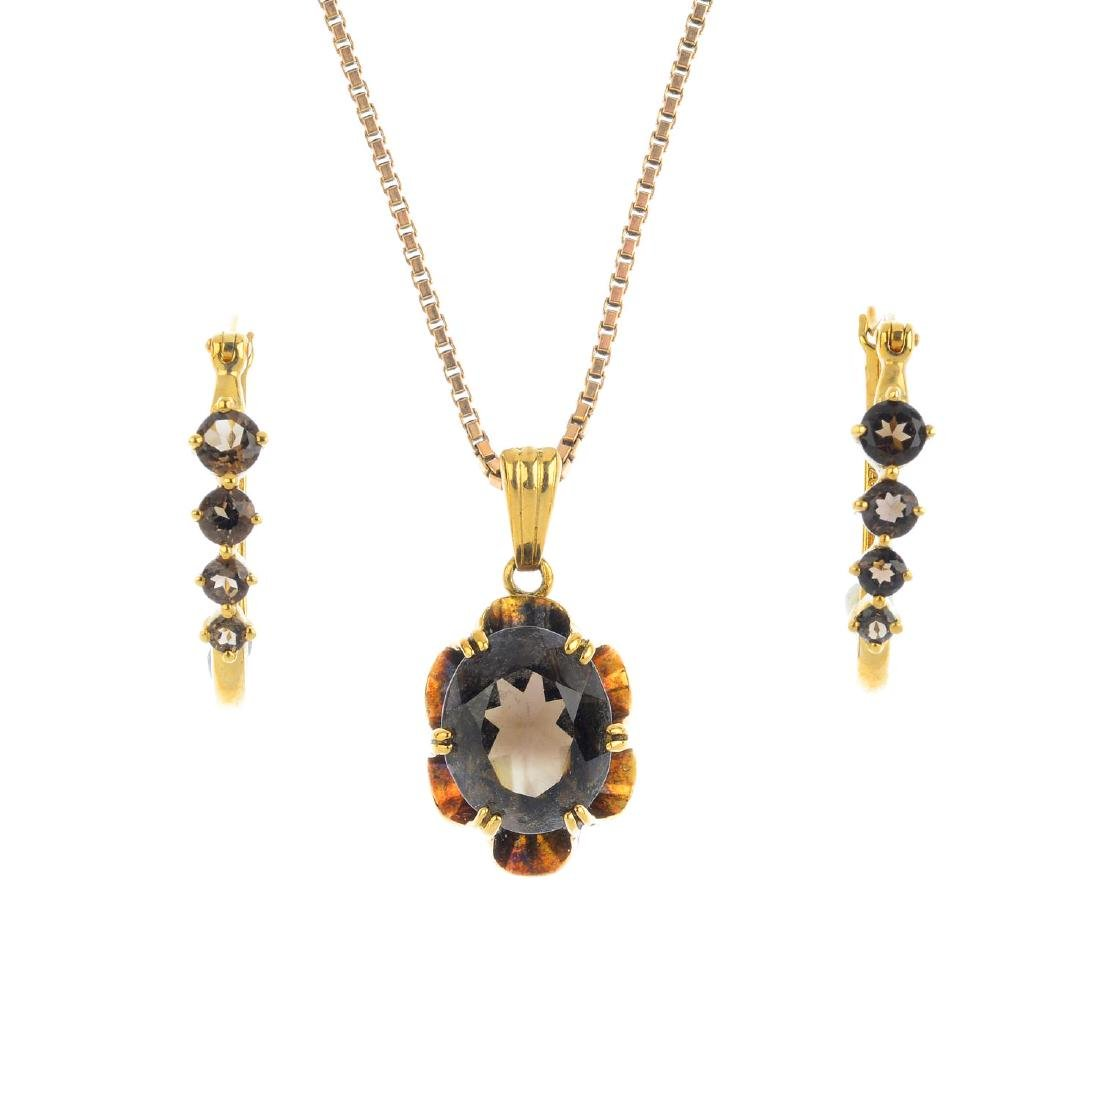 A 9ct gold smoky quartz pendant and a pair of 9ct gold